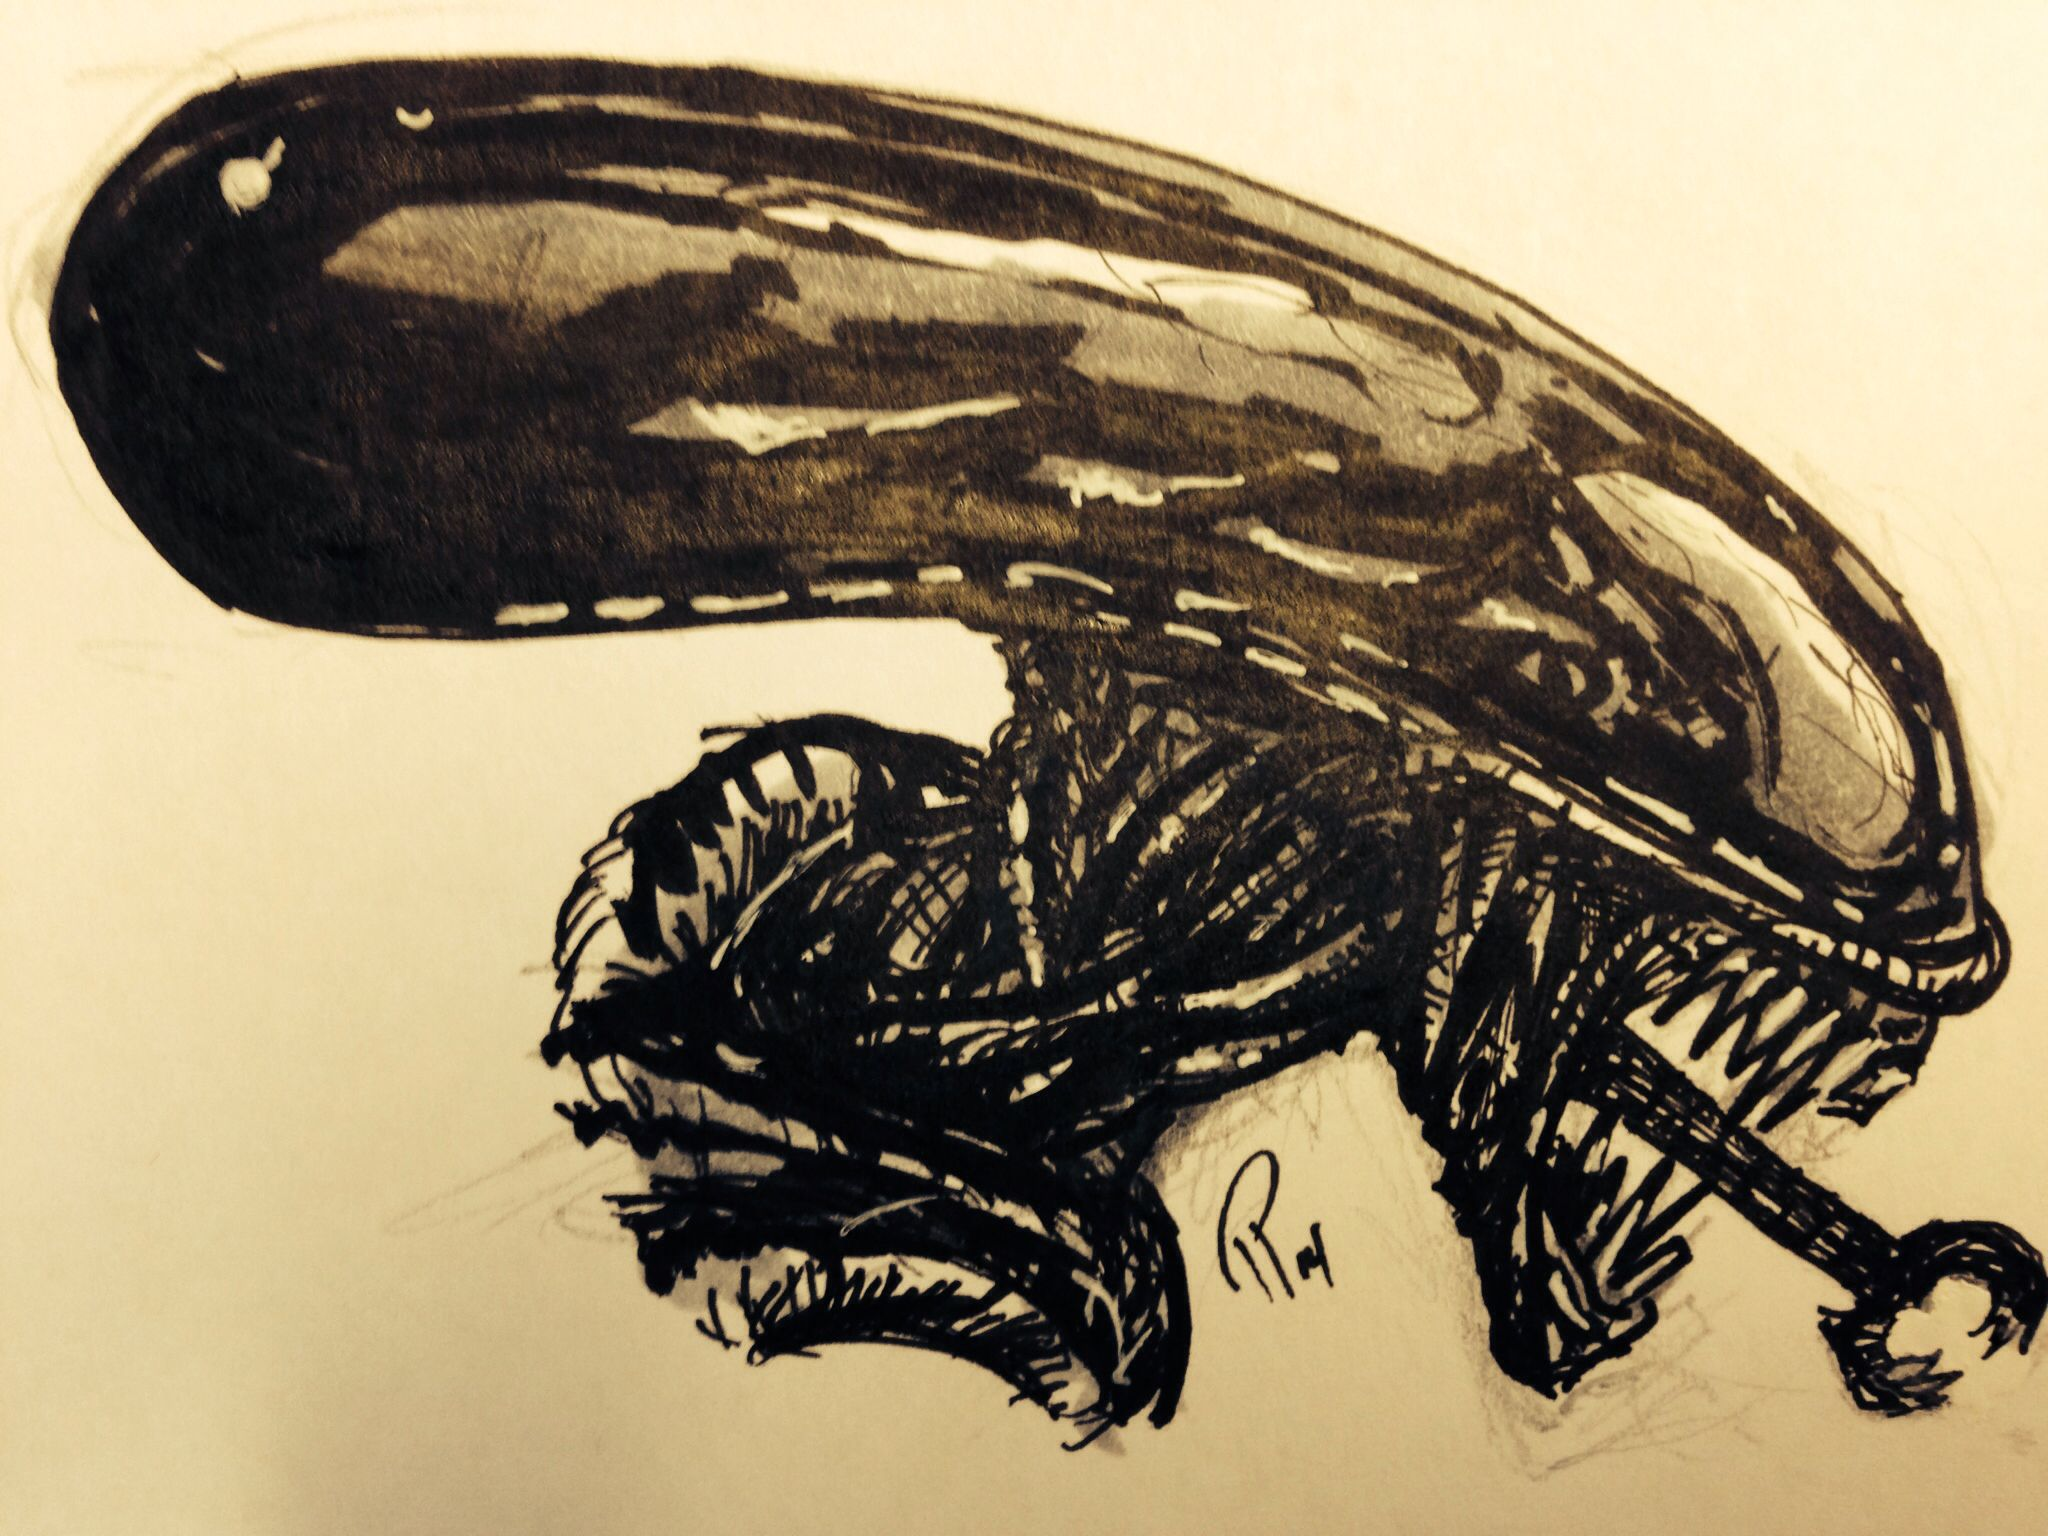 Finally had time for a quick sketch. Alien Giger art